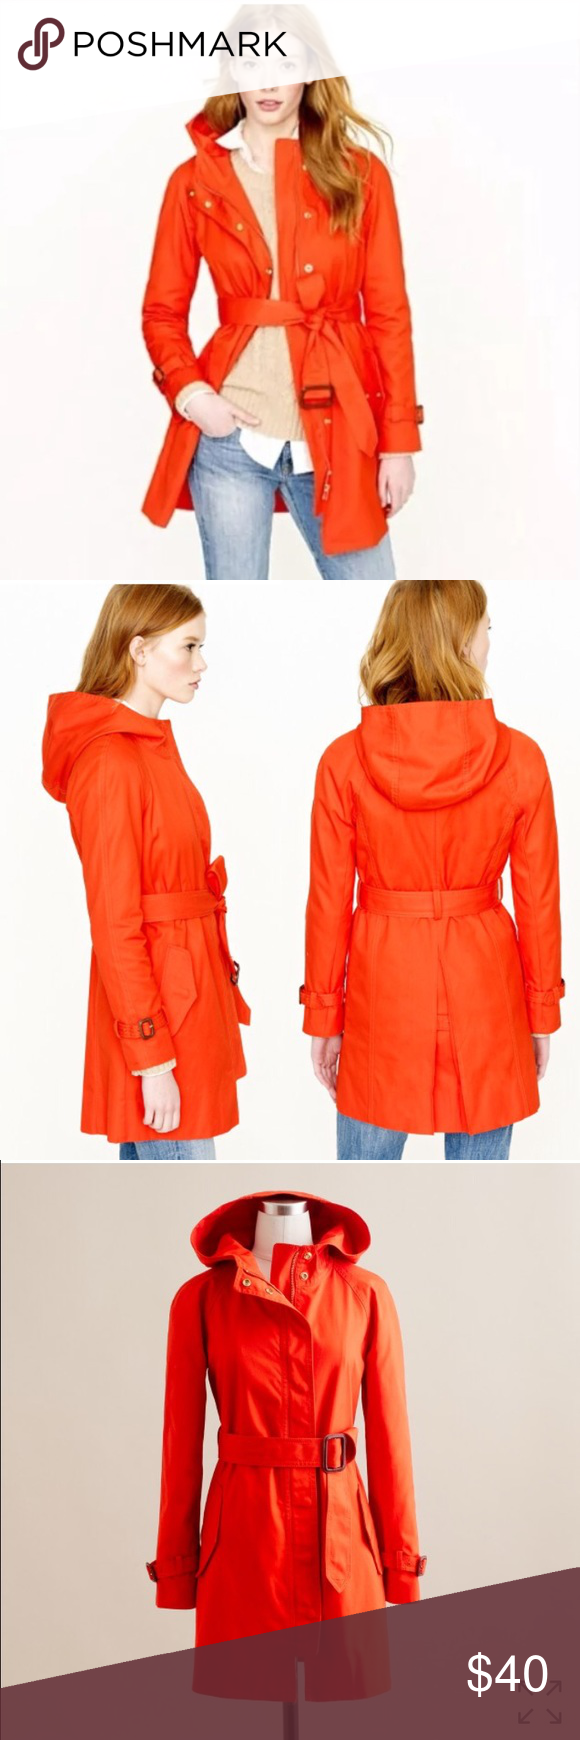 J. Crew Martinee Trench Coat, Red / Orange 100% cotton, sleeve lining 100% acetate.  Regular fit. Zip closure. Long sleeves. Hits below hip. Oversized hood, waist belt.  Import.  Condition: Very Good. Note, slight wear on front left pocket button from dry cleaning, as shown. J. Crew Jackets & Coats Trench Coats